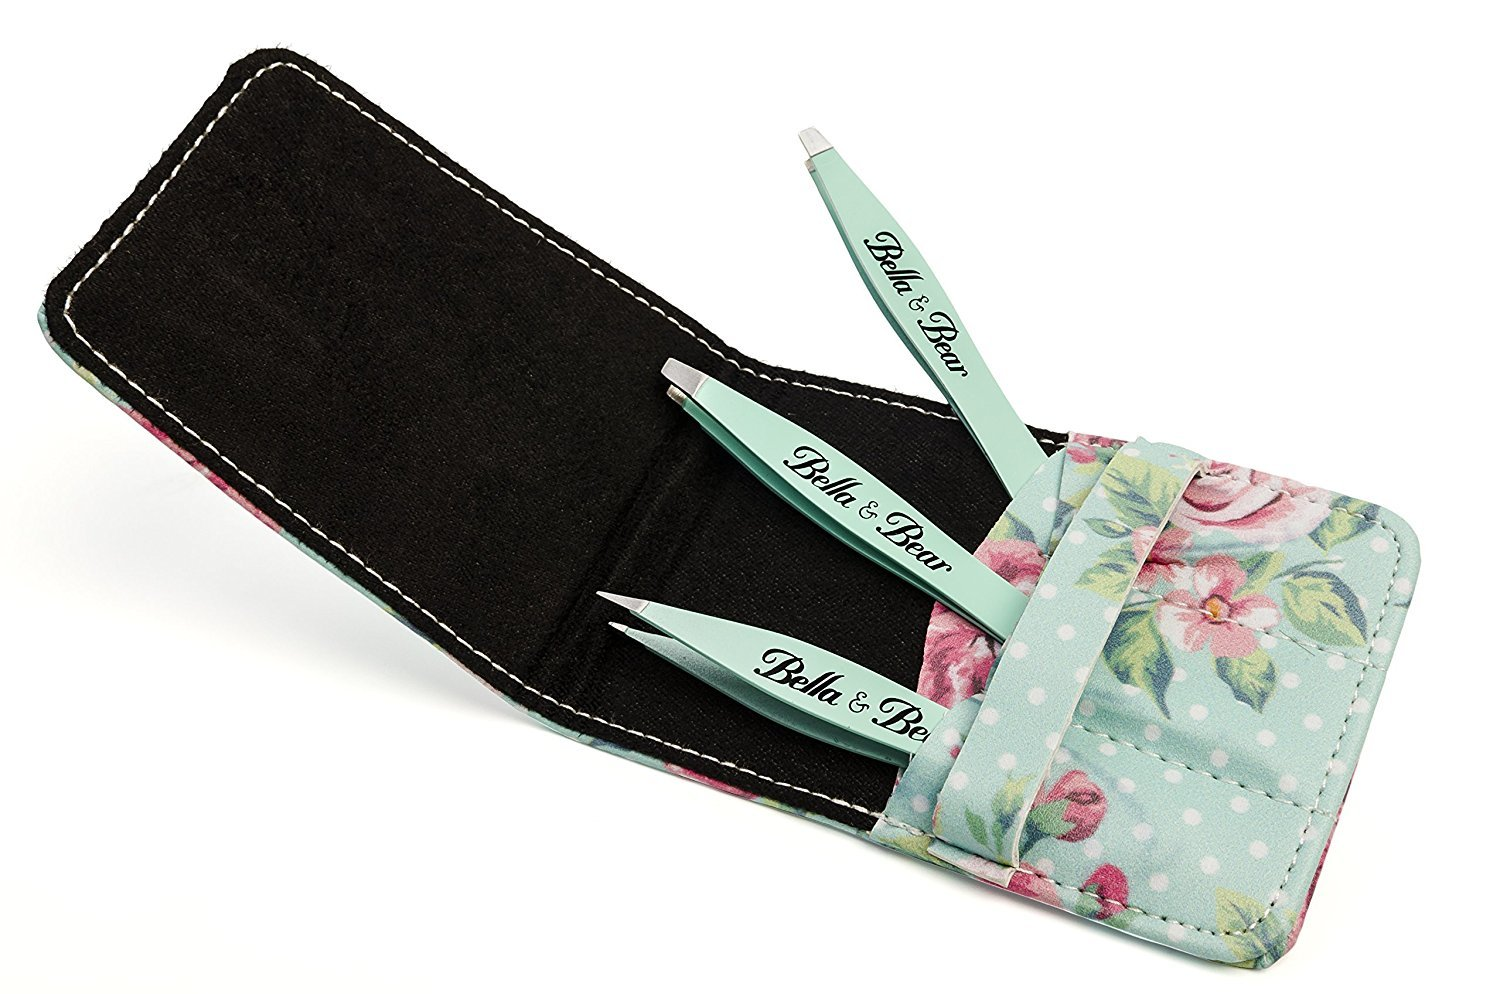 Eyebrow Tweezers by Bella and Bear - The Tweezers Set for Professional Shaping by Bella and Bear (Image #8)